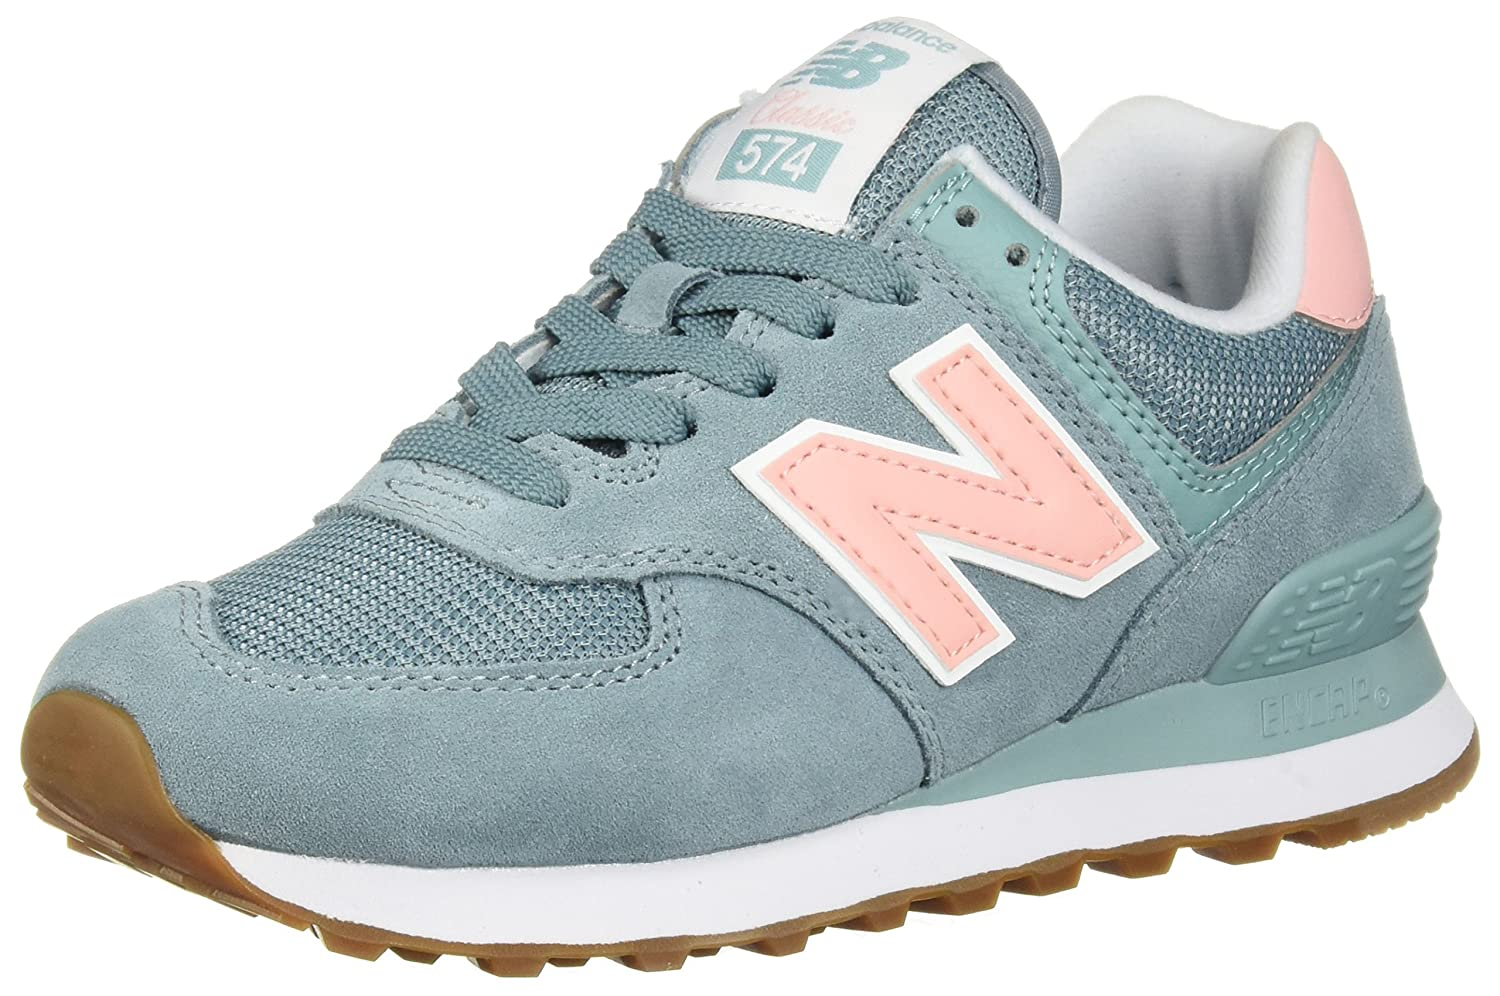 New Balance Wl574, Bottes (Smoke Bottes Classiques Femme Gris (Smoke 19962 Blue/Himalayan Pack/Mineral Sage Flb) 291ddce - reprogrammed.space